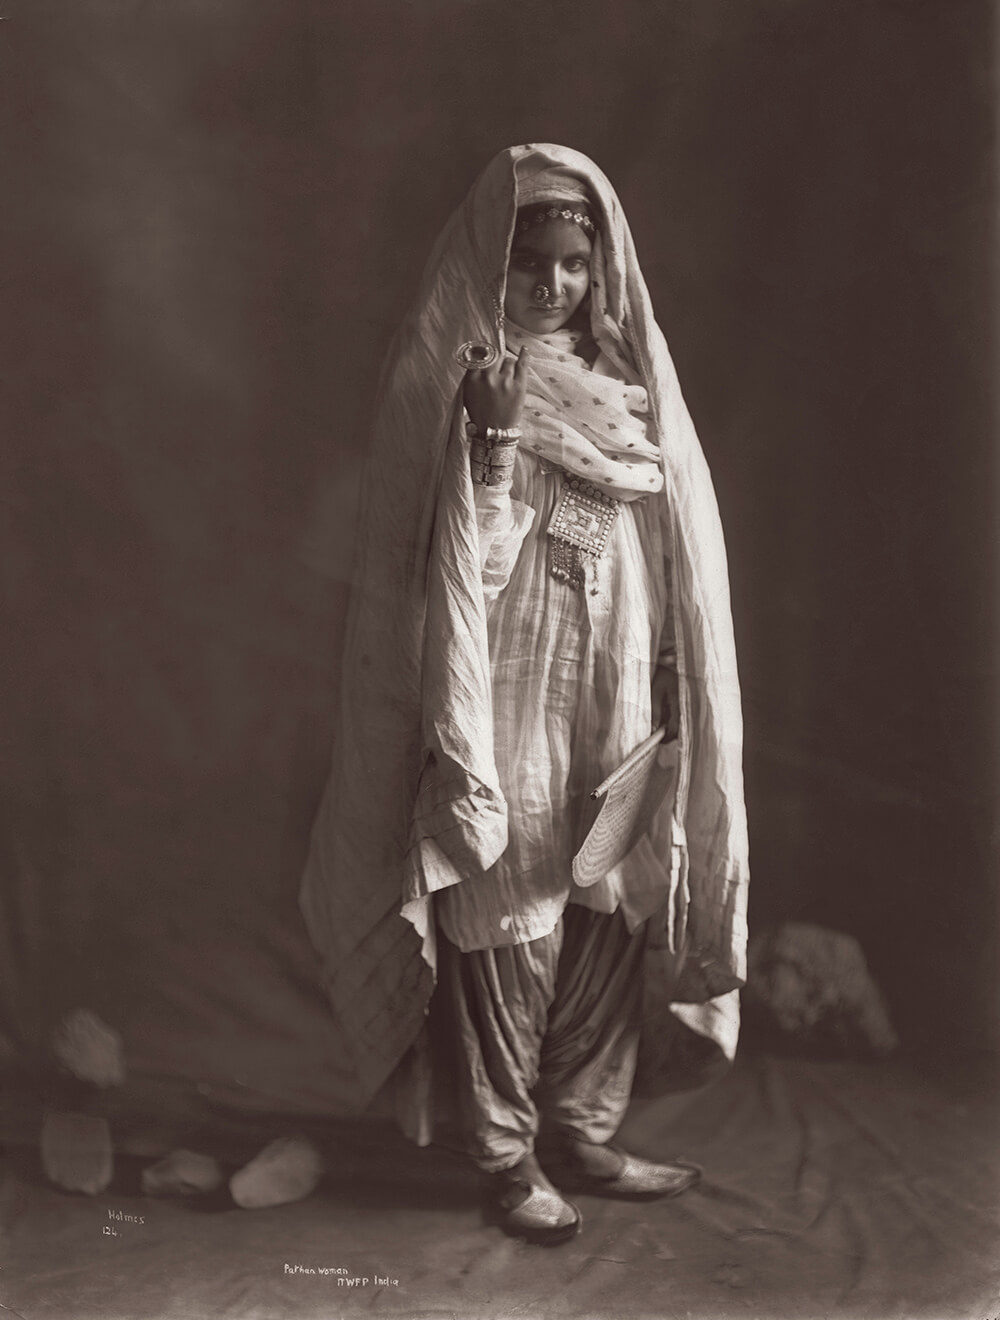 Pathan Woman Fine Art Photography Gettyimagesgallery Com